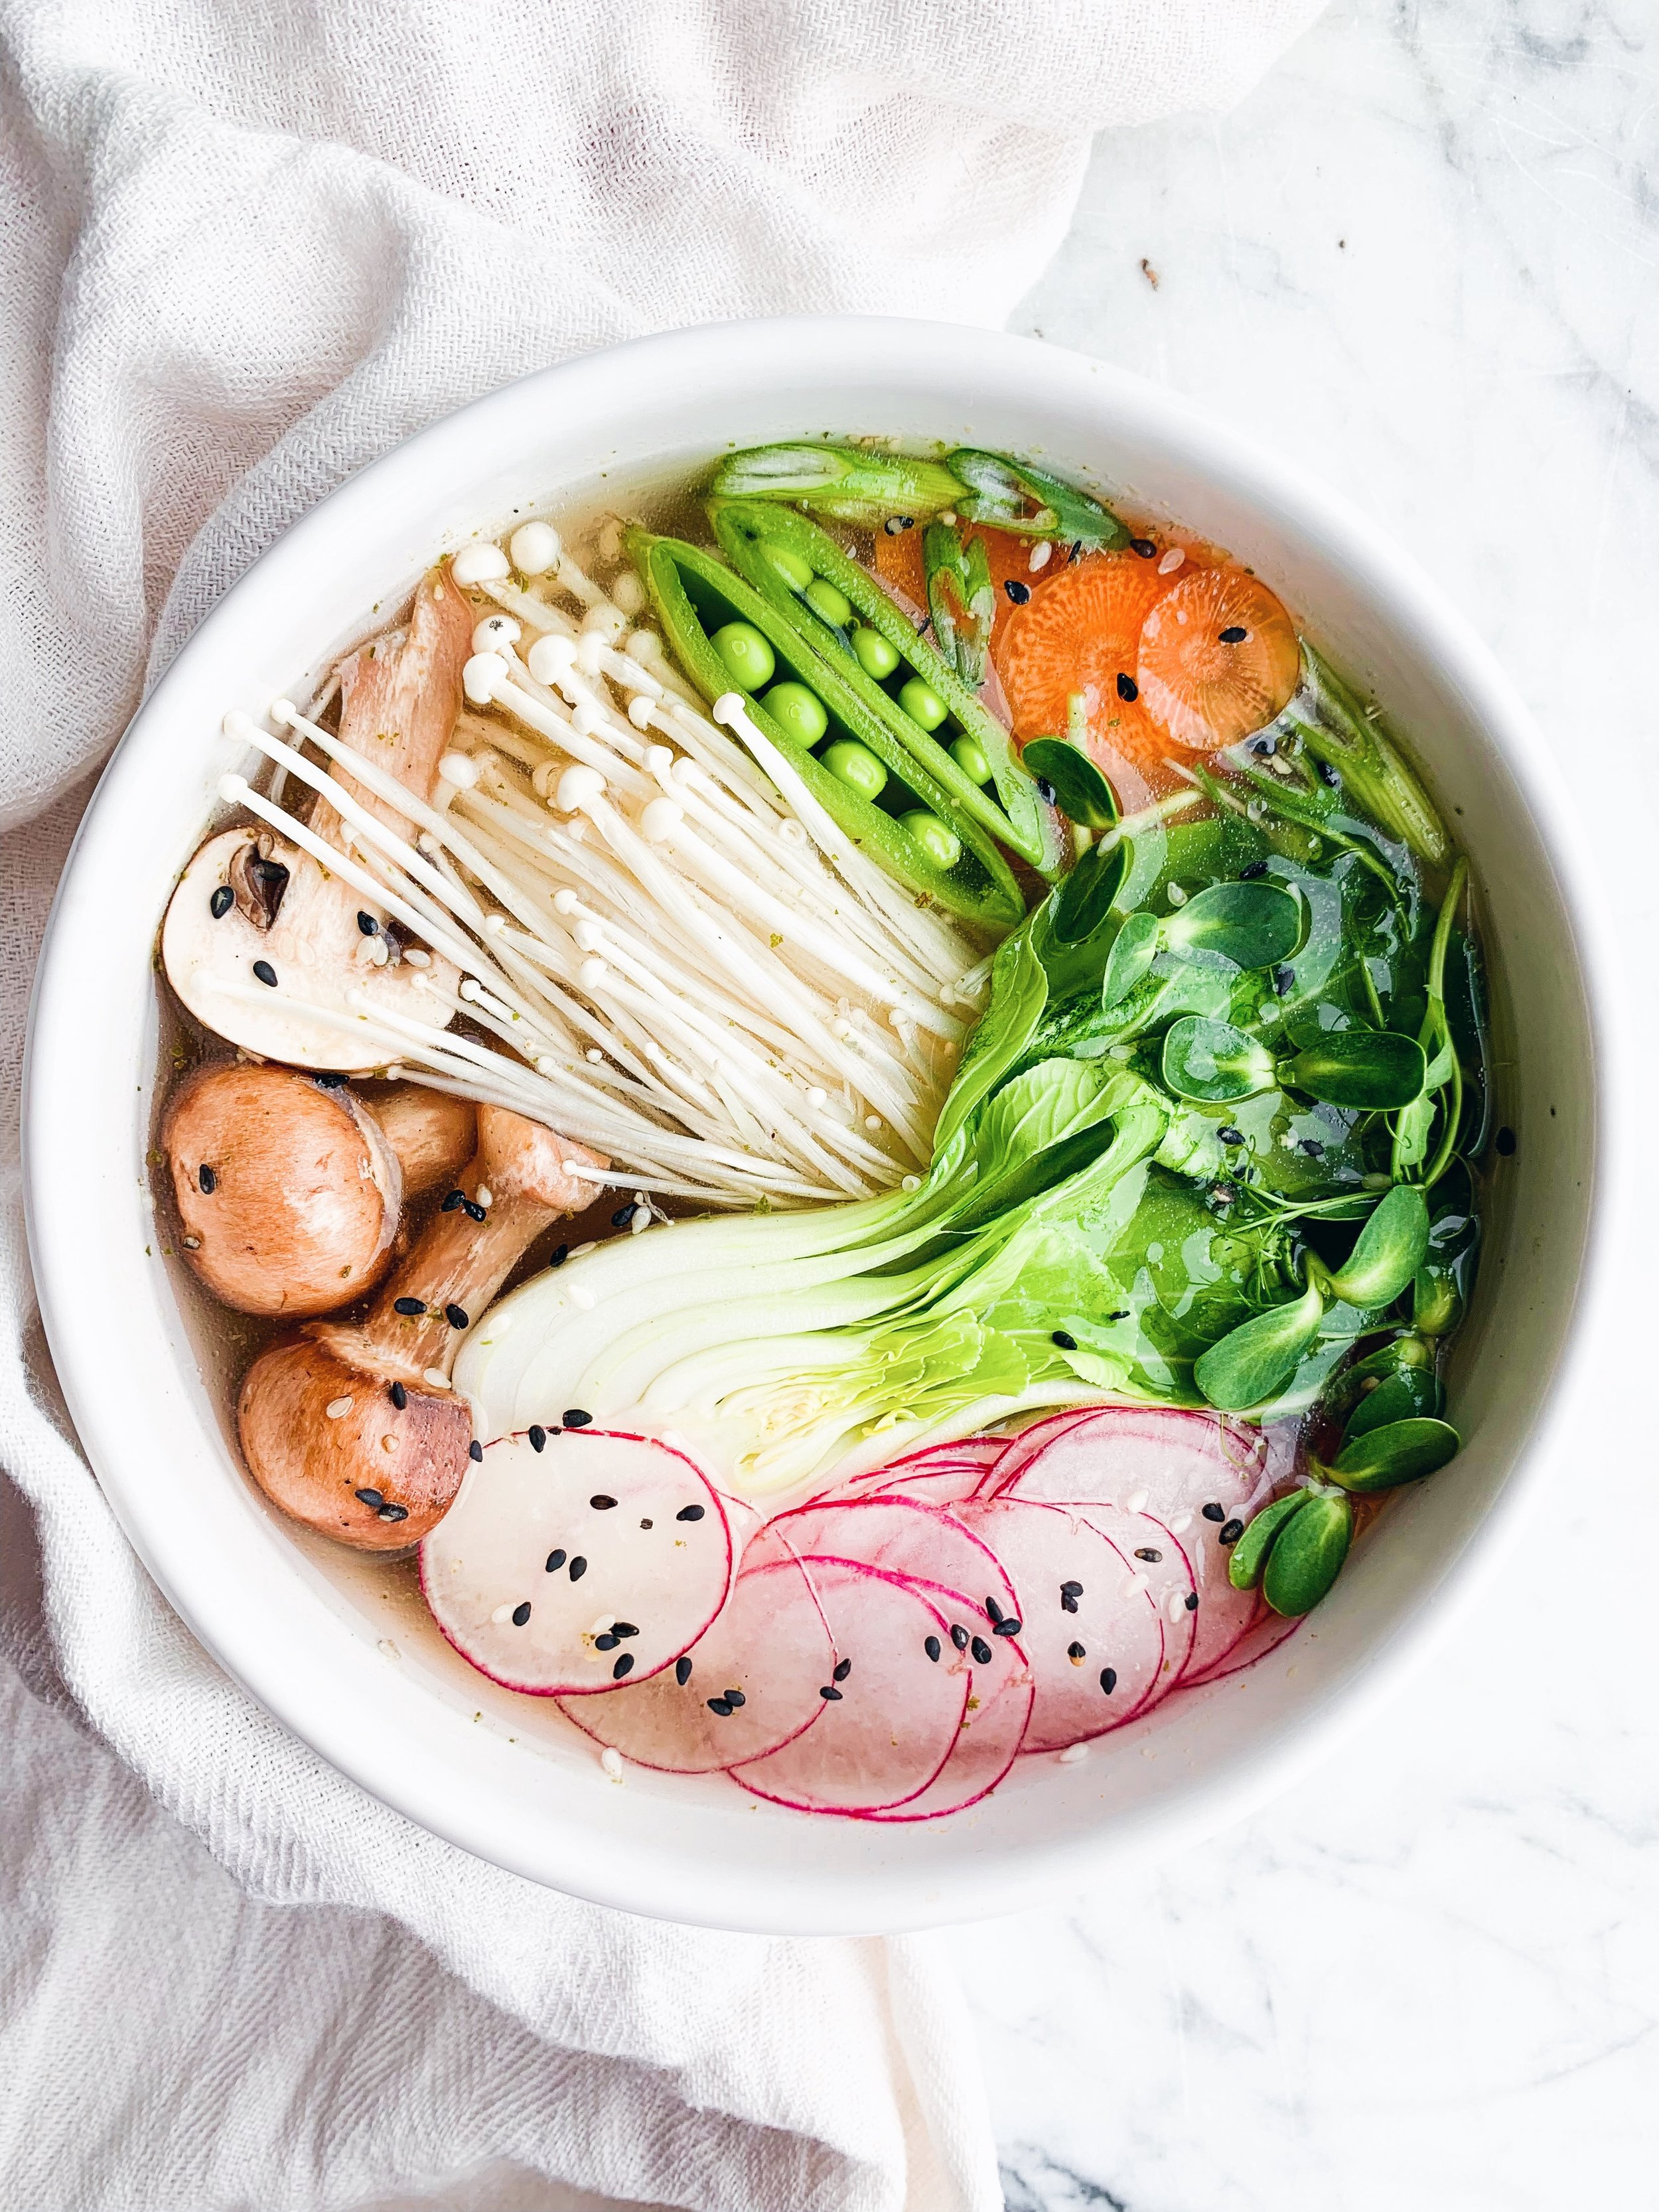 """Vegan Pho with Enoki Mushrooms and Bok Choy - an easy, vegetable packed soup that will warm you up from the inside out. The enoki mushrooms are awesome """"noodles"""" - foody first - #vegan #plantbased #glutenfree #plaeo #soup #pho #soupseason #healthy #whole30recipes #whole30"""